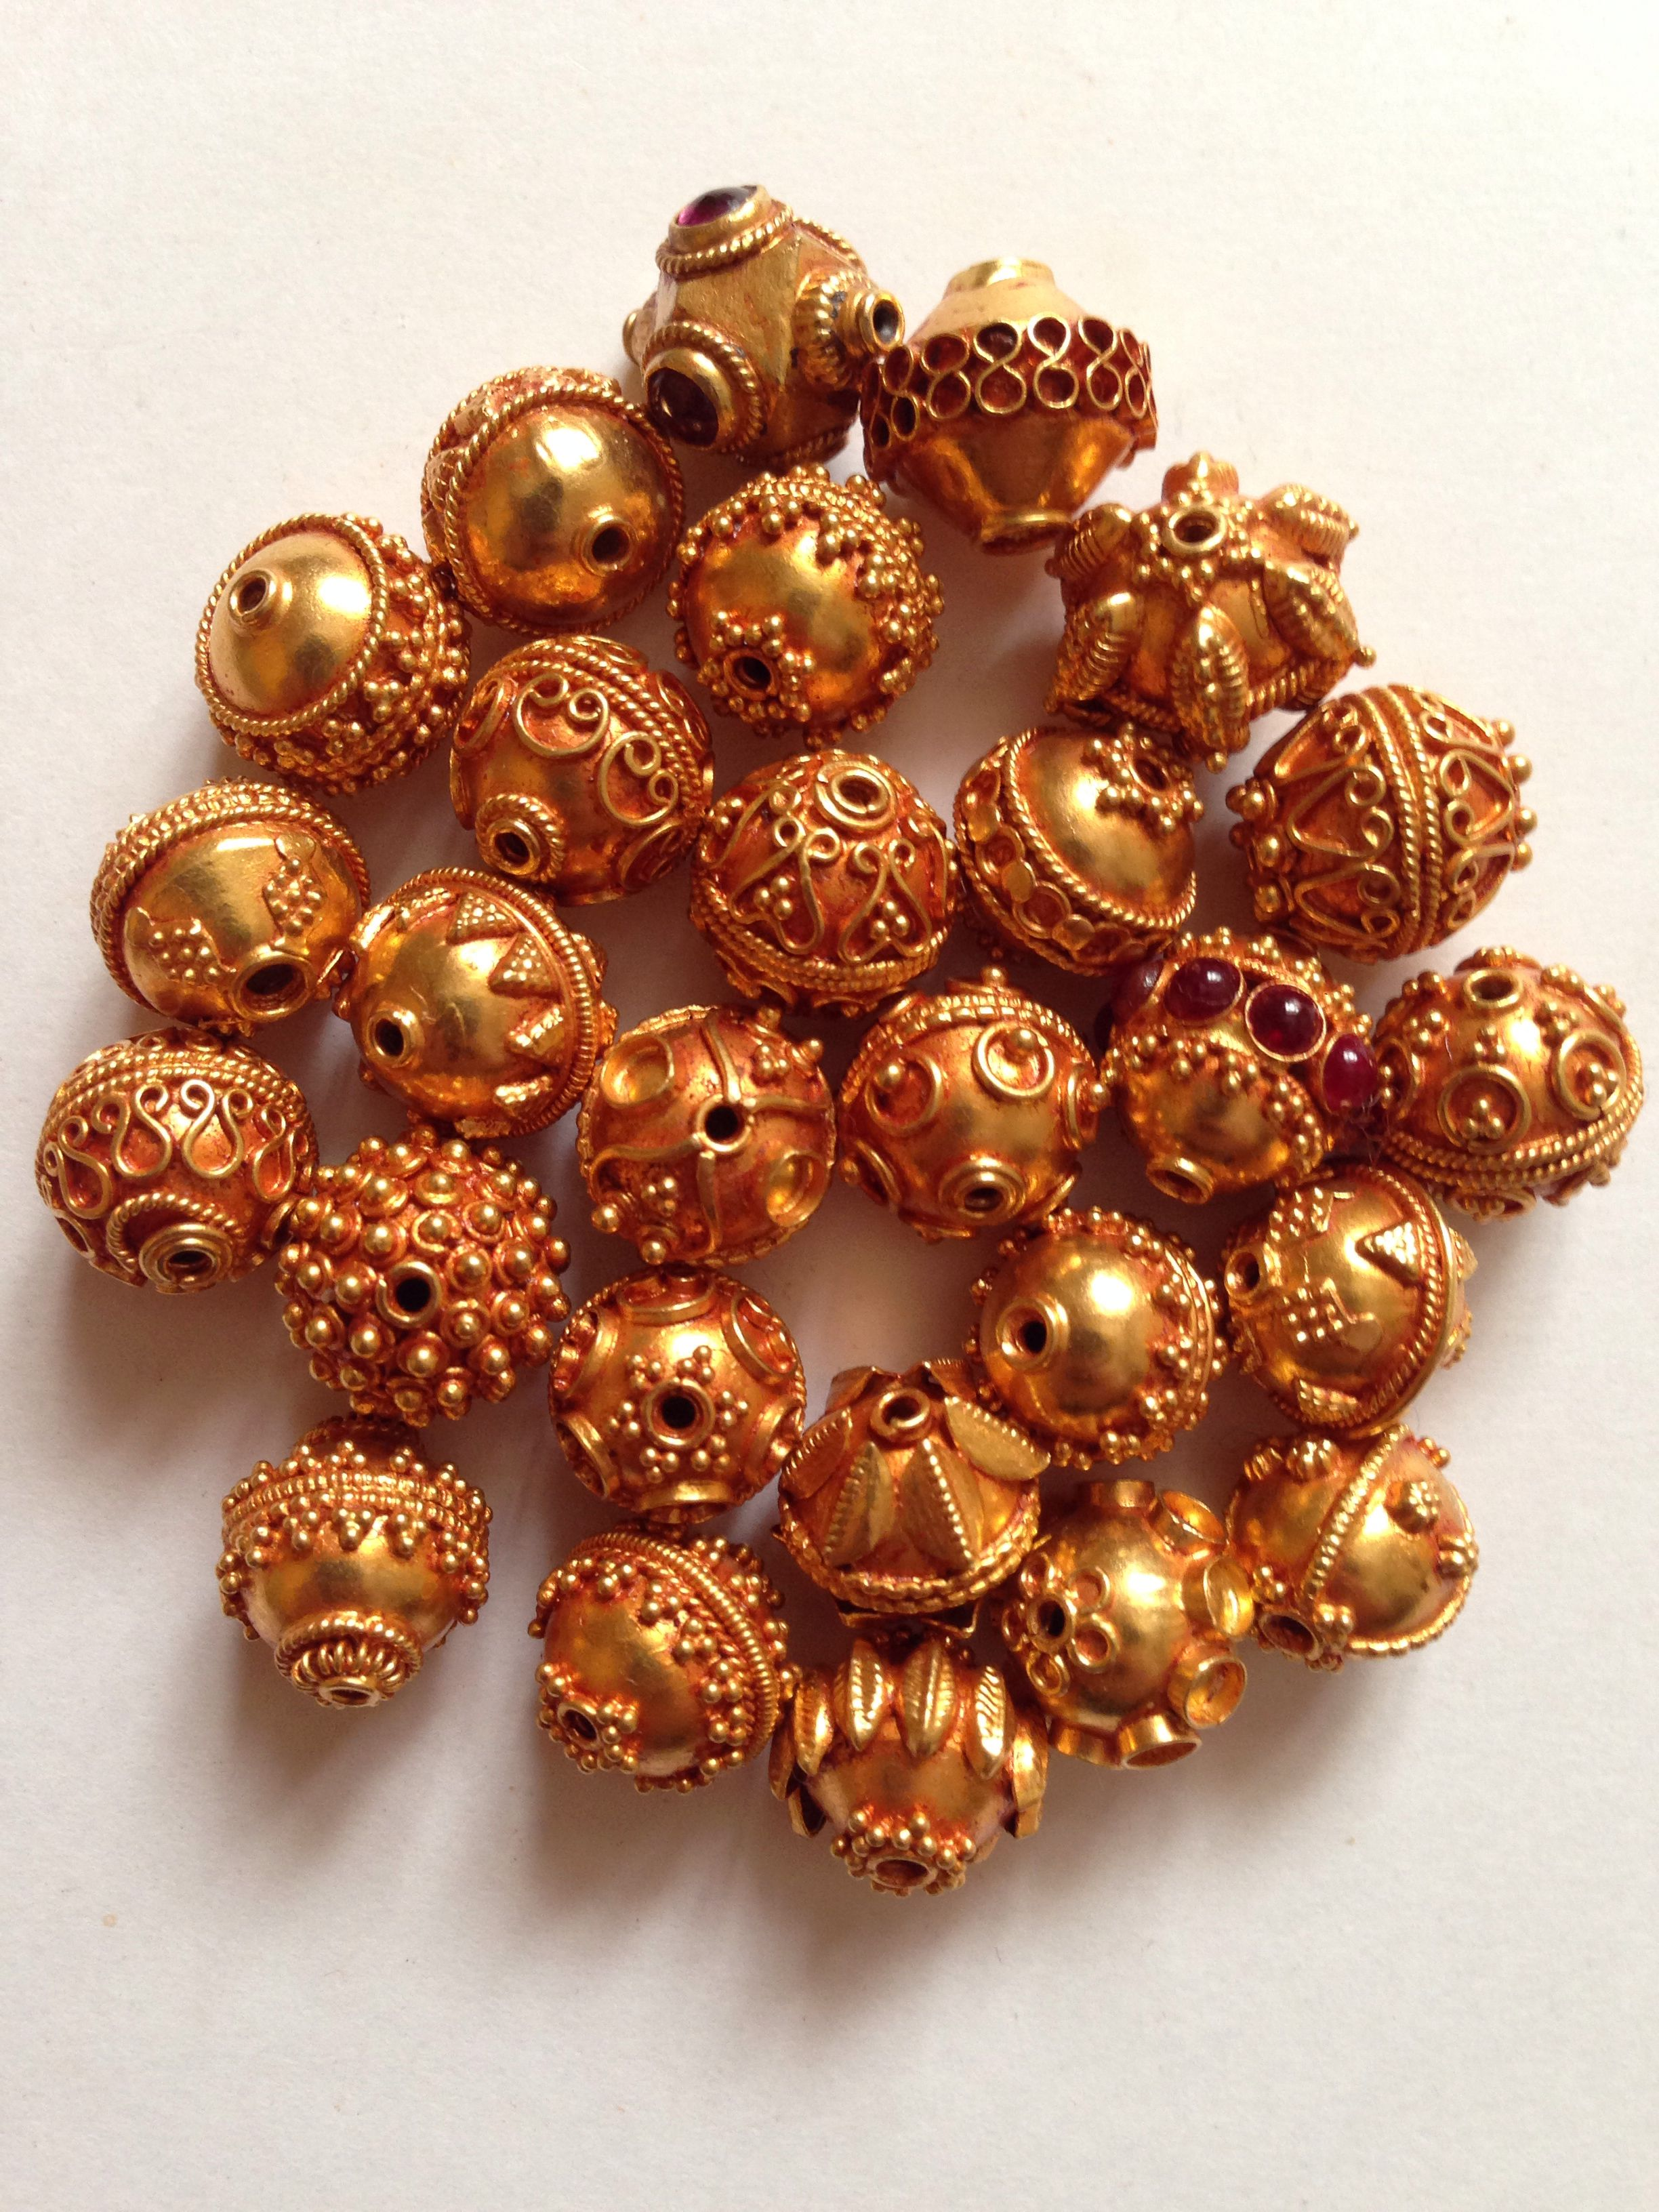 Handmade Gold Beads With Fine Granulation Technique Ethnic Jewellery In Search Of Beauty